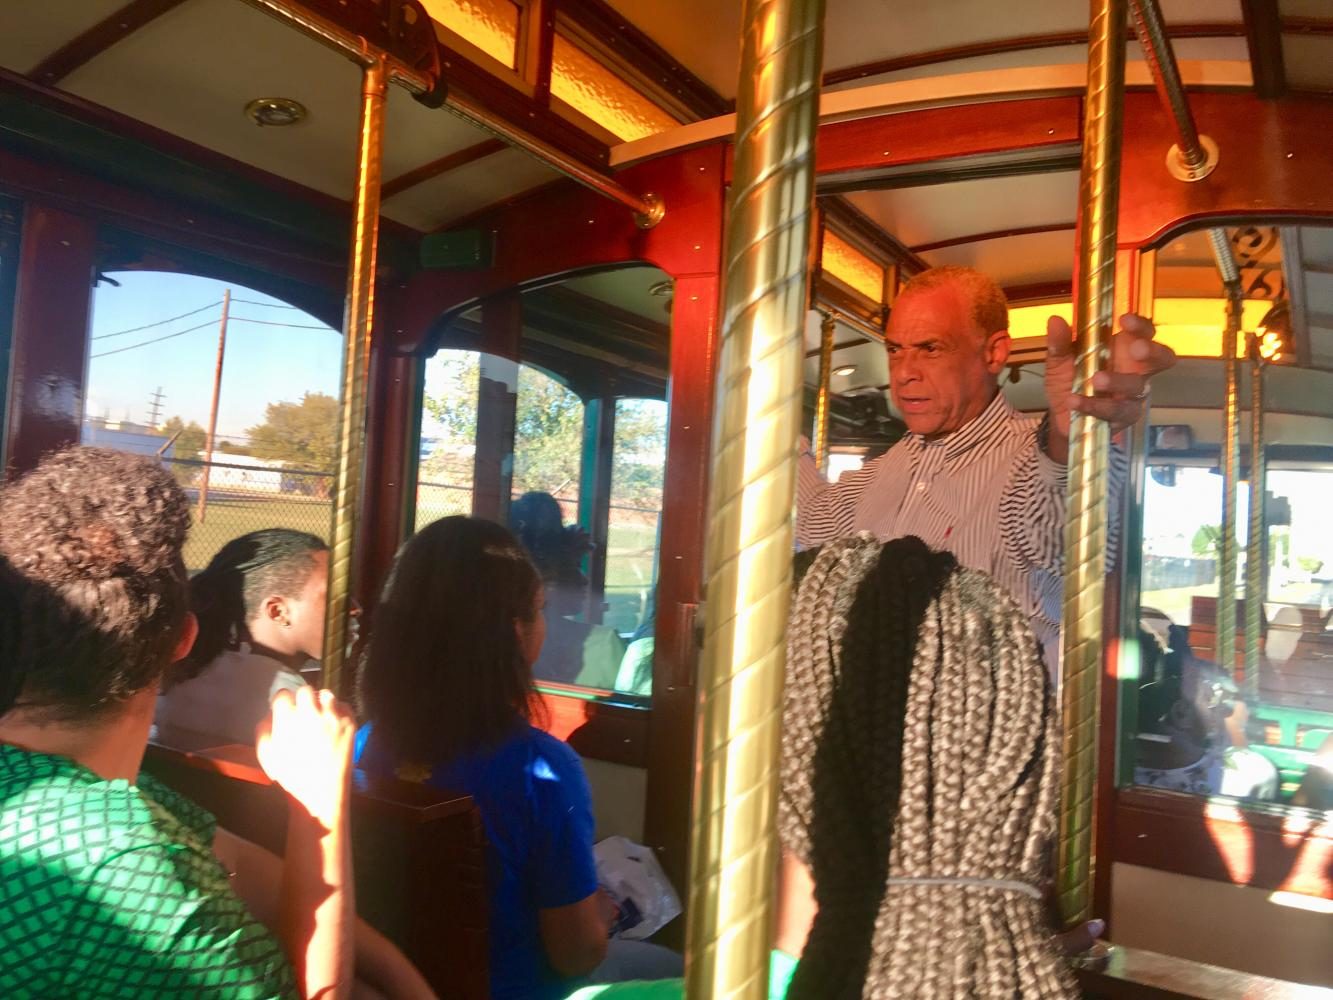 Vice president of Intercultural Affairs Maurice Cooley leads the 45 minute tour about the history of Huntington and trolley.